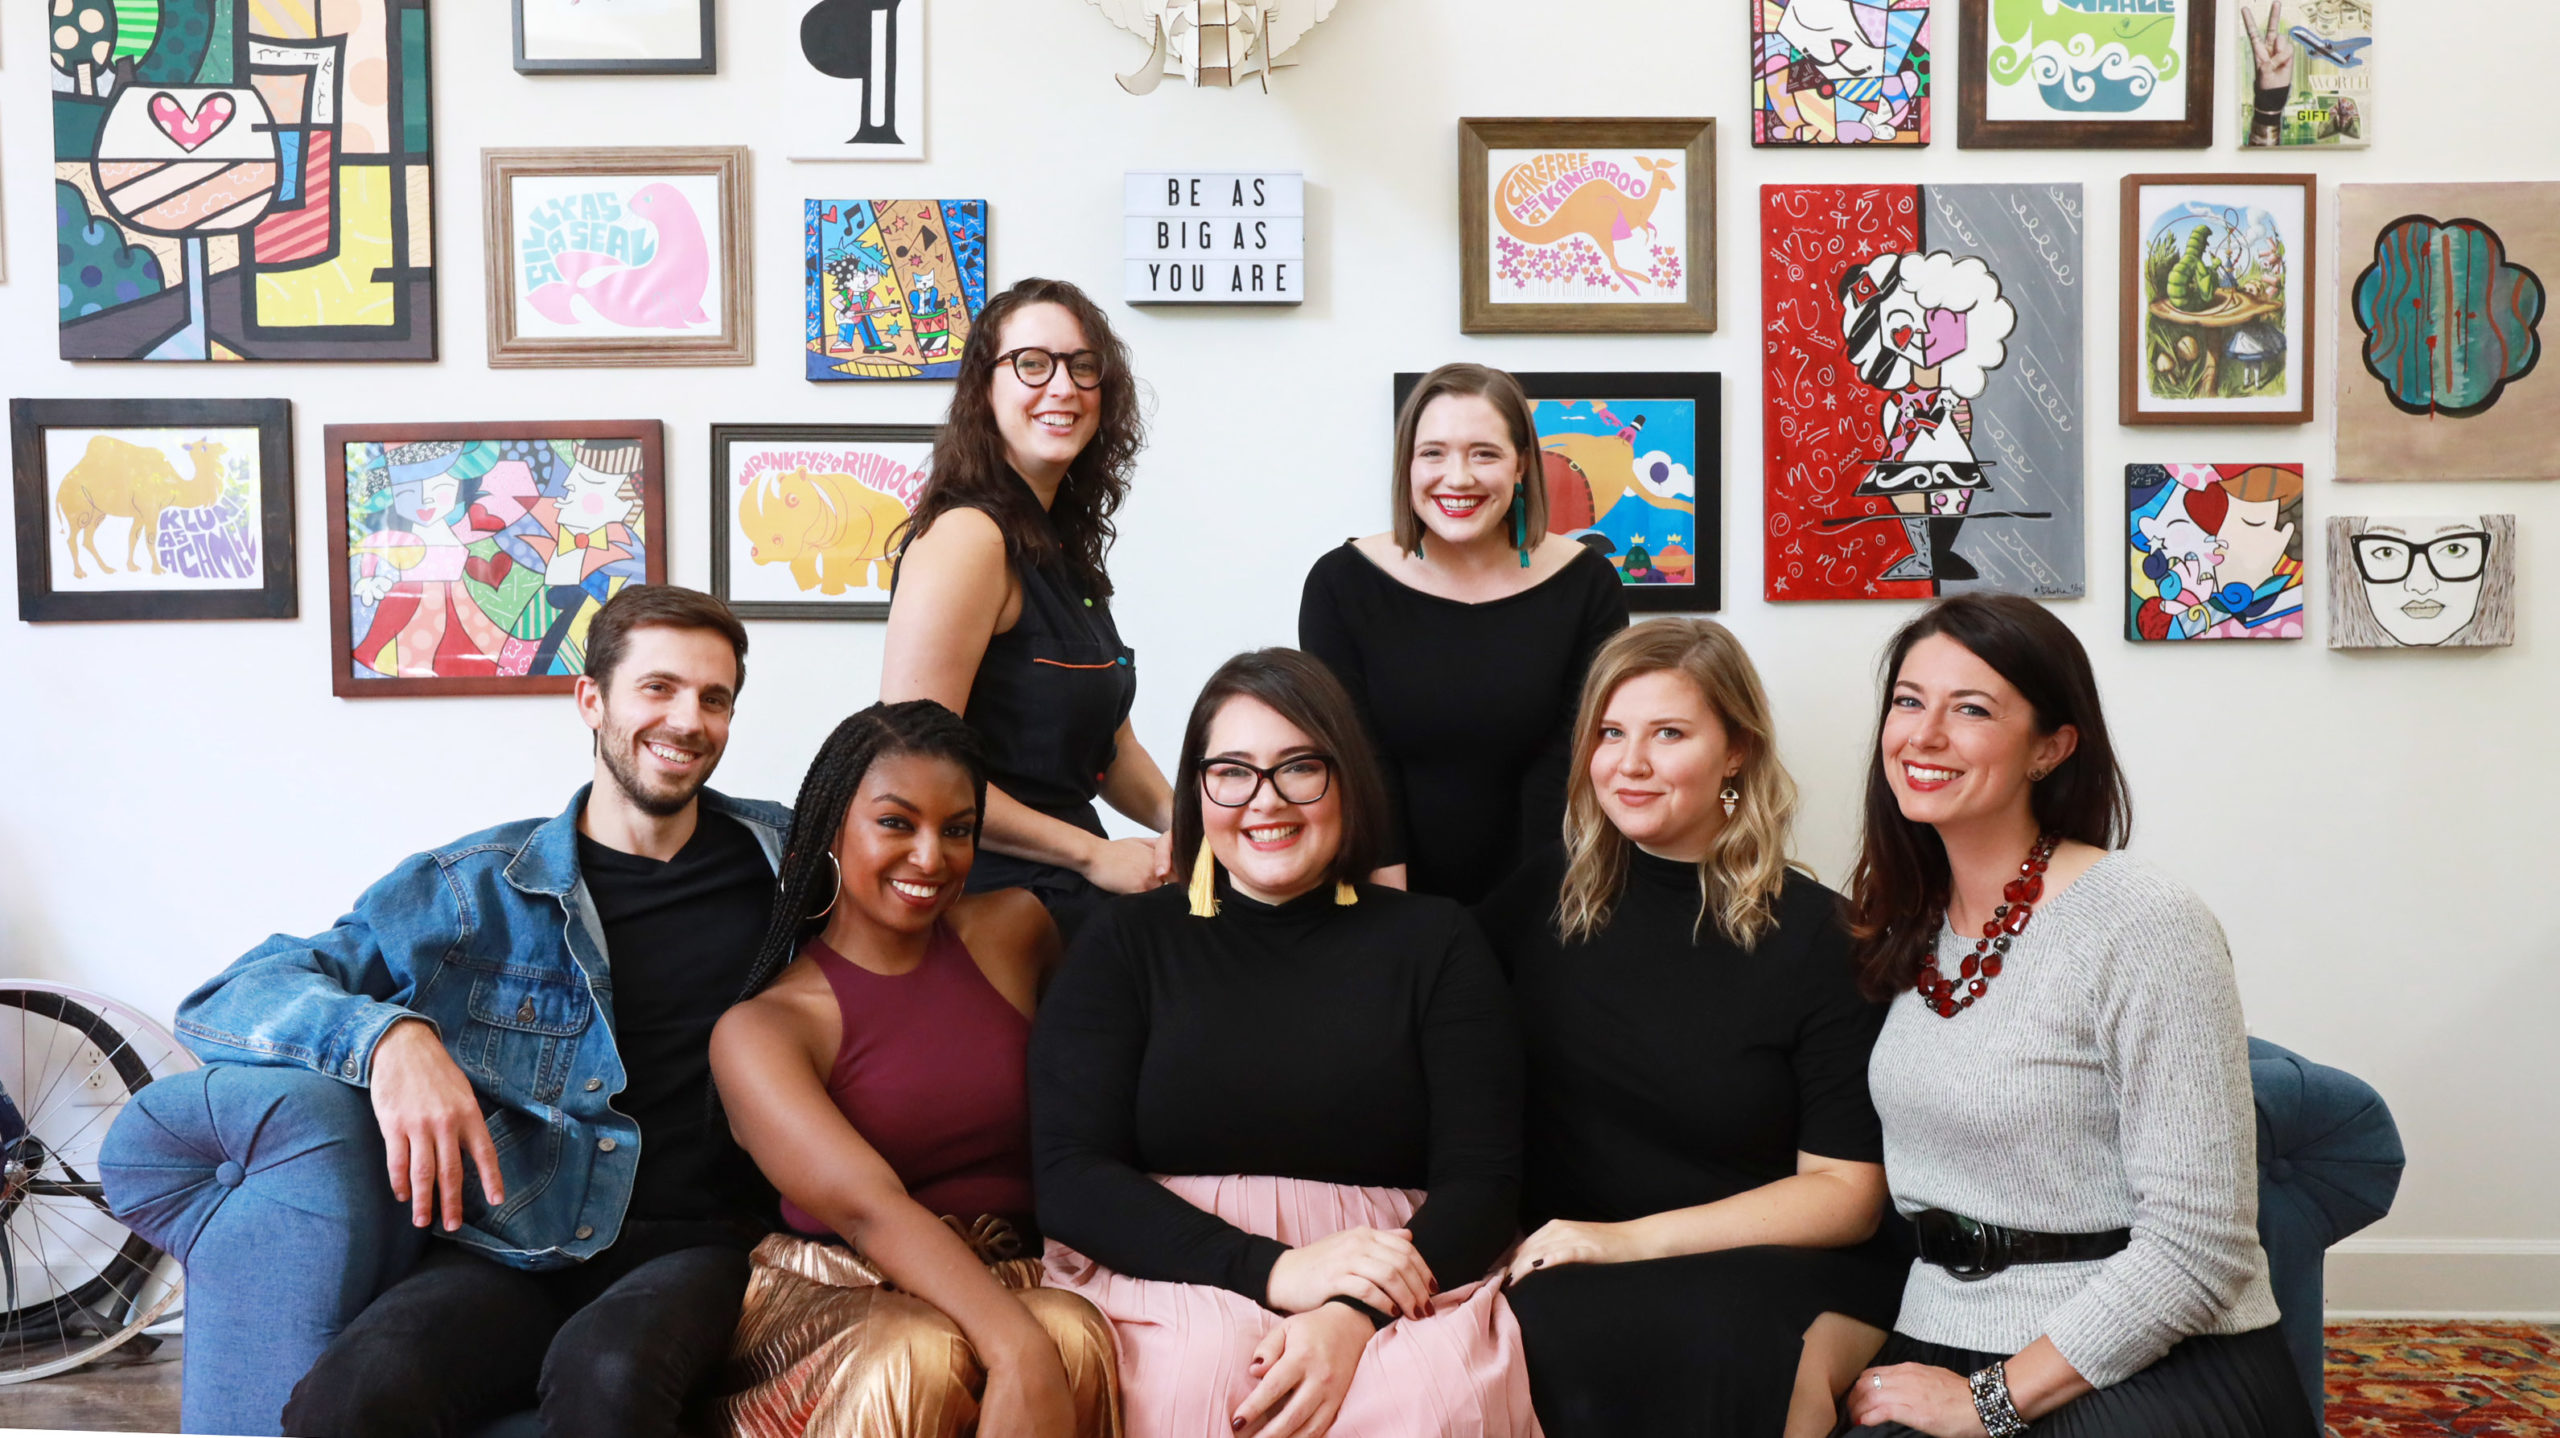 The FRQNCY Media team (L to R: Associate Producer Peter LoPinto; Communications Director Sigele Winbush; Executive & Content Support Becca Godwin; Founder & CEO Michelle Khouri; Content Strategist Jessica Olivier; Producer Enna Garkusha; Culture Consultant Theresa M. Ward)